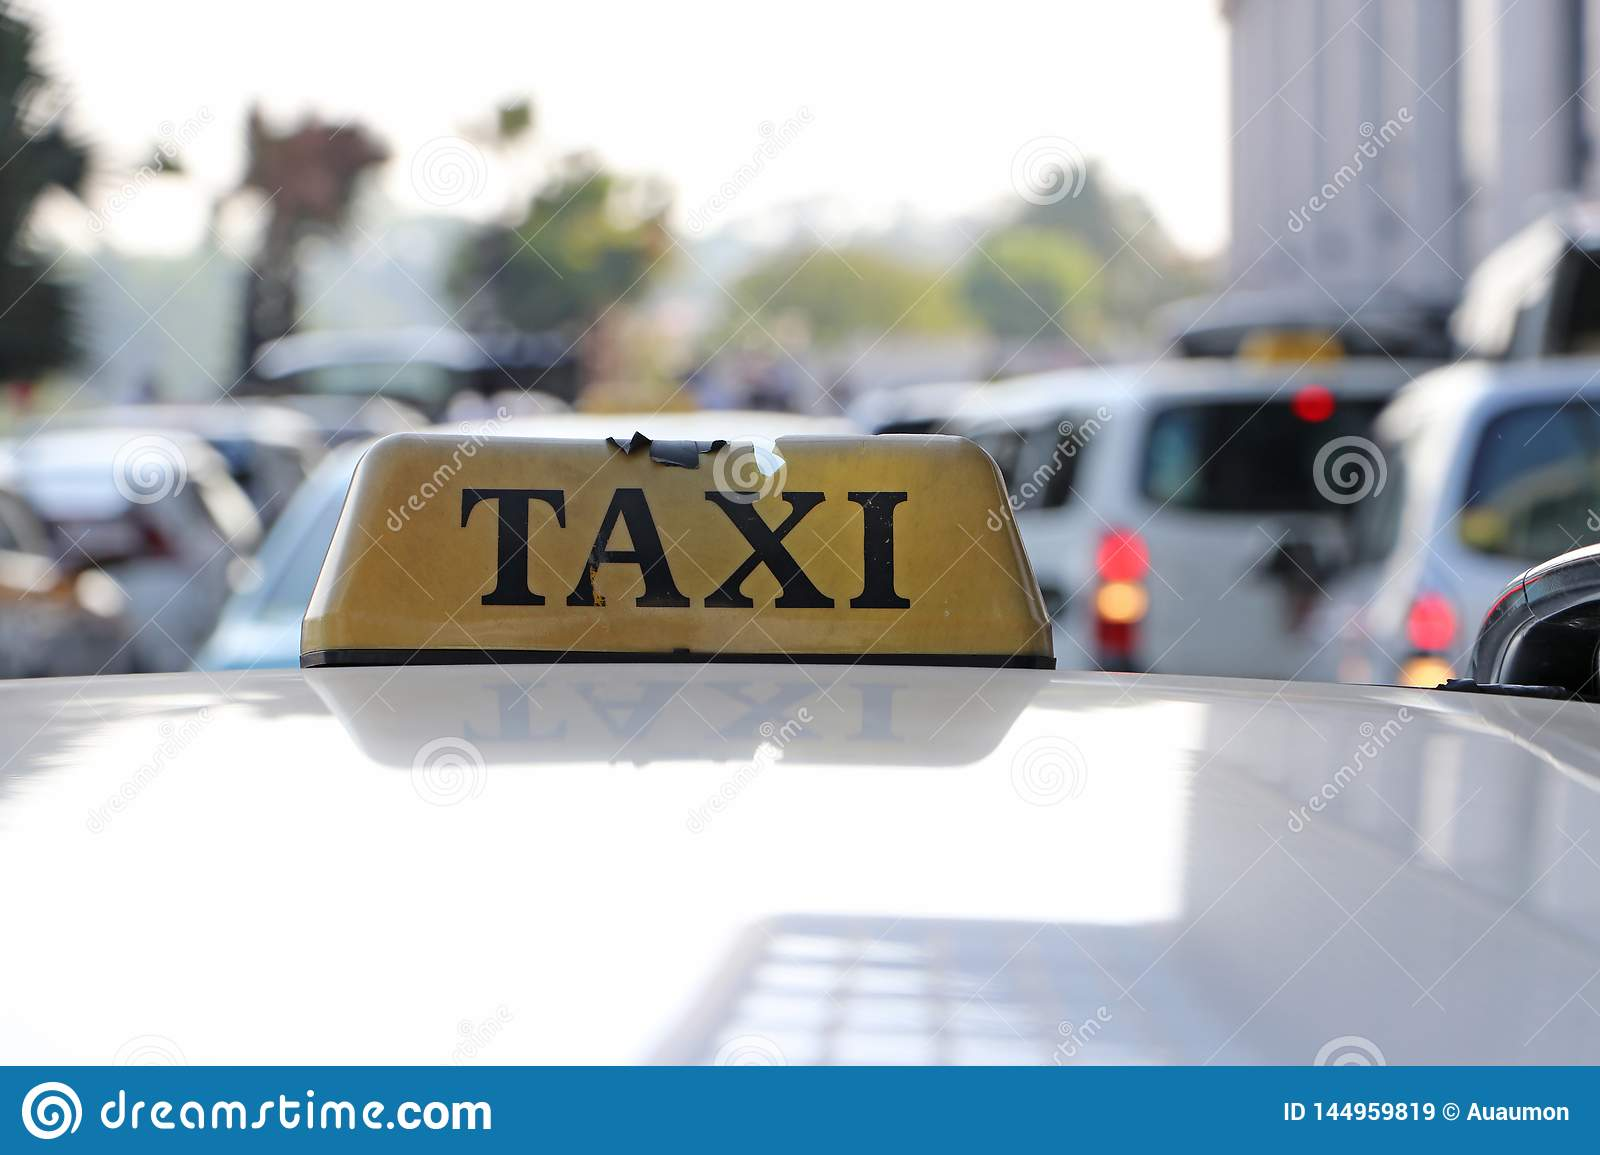 Broken taxi light sign or cab sign in drab yellow color with black text on the car roof at the street blurred background